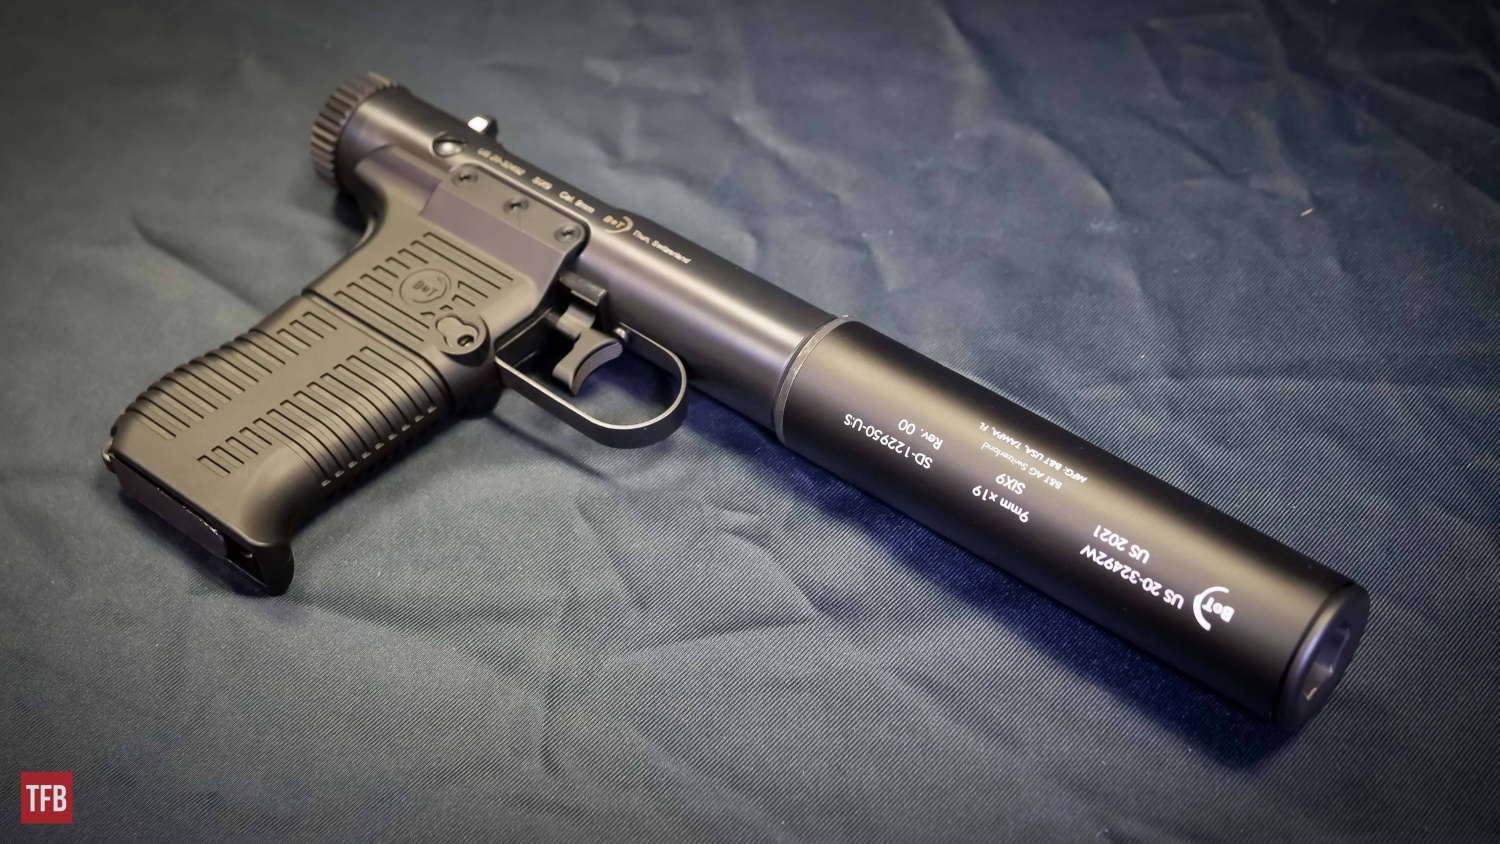 [TFB GUNFEST] History, Stealthy And Sexy - B&T STATION SIX